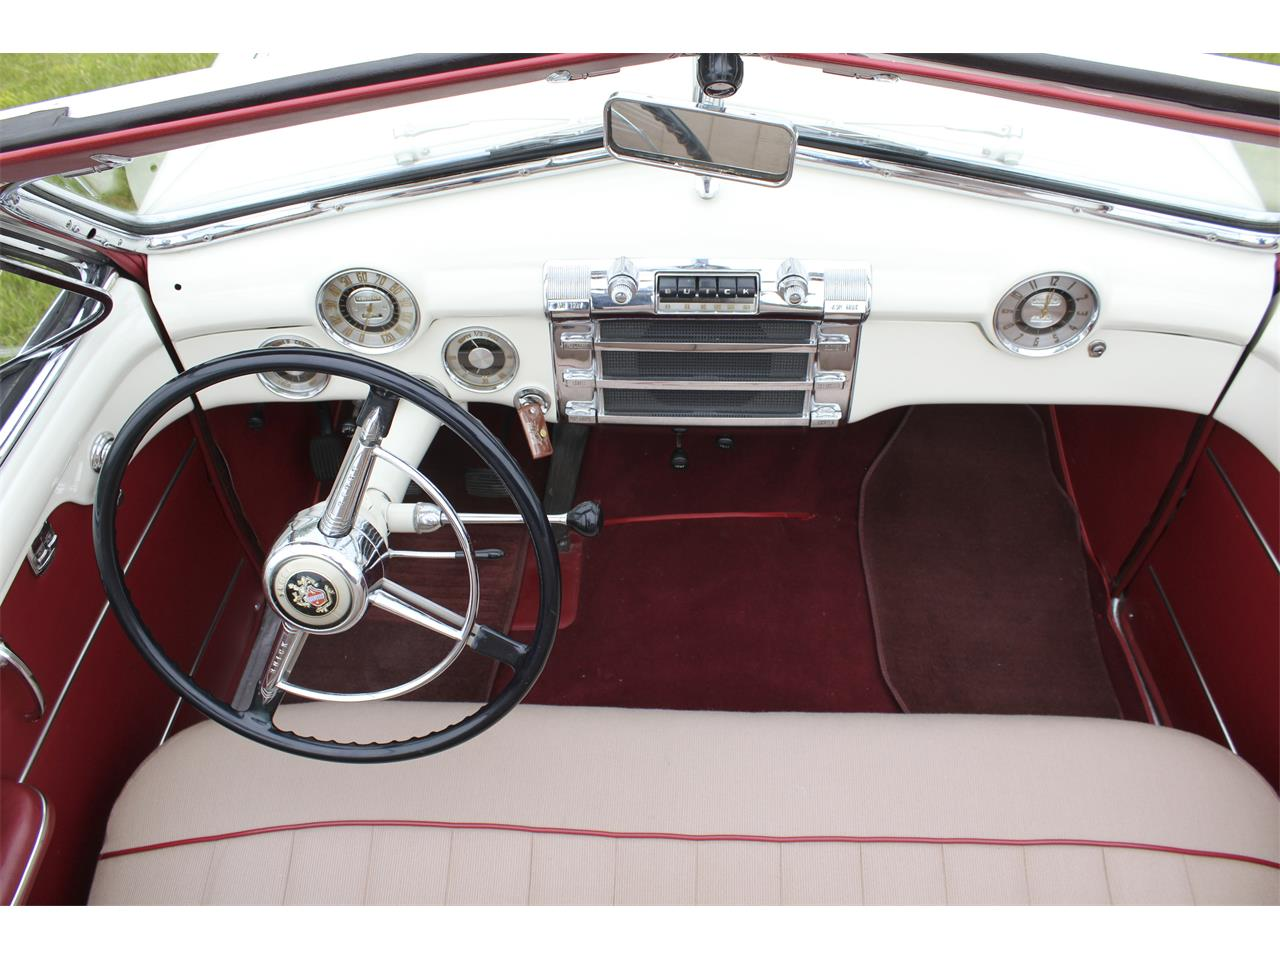 Large Picture of 1948 Buick Convertible - $55,000.00 Offered by a Private Seller - QJJ6